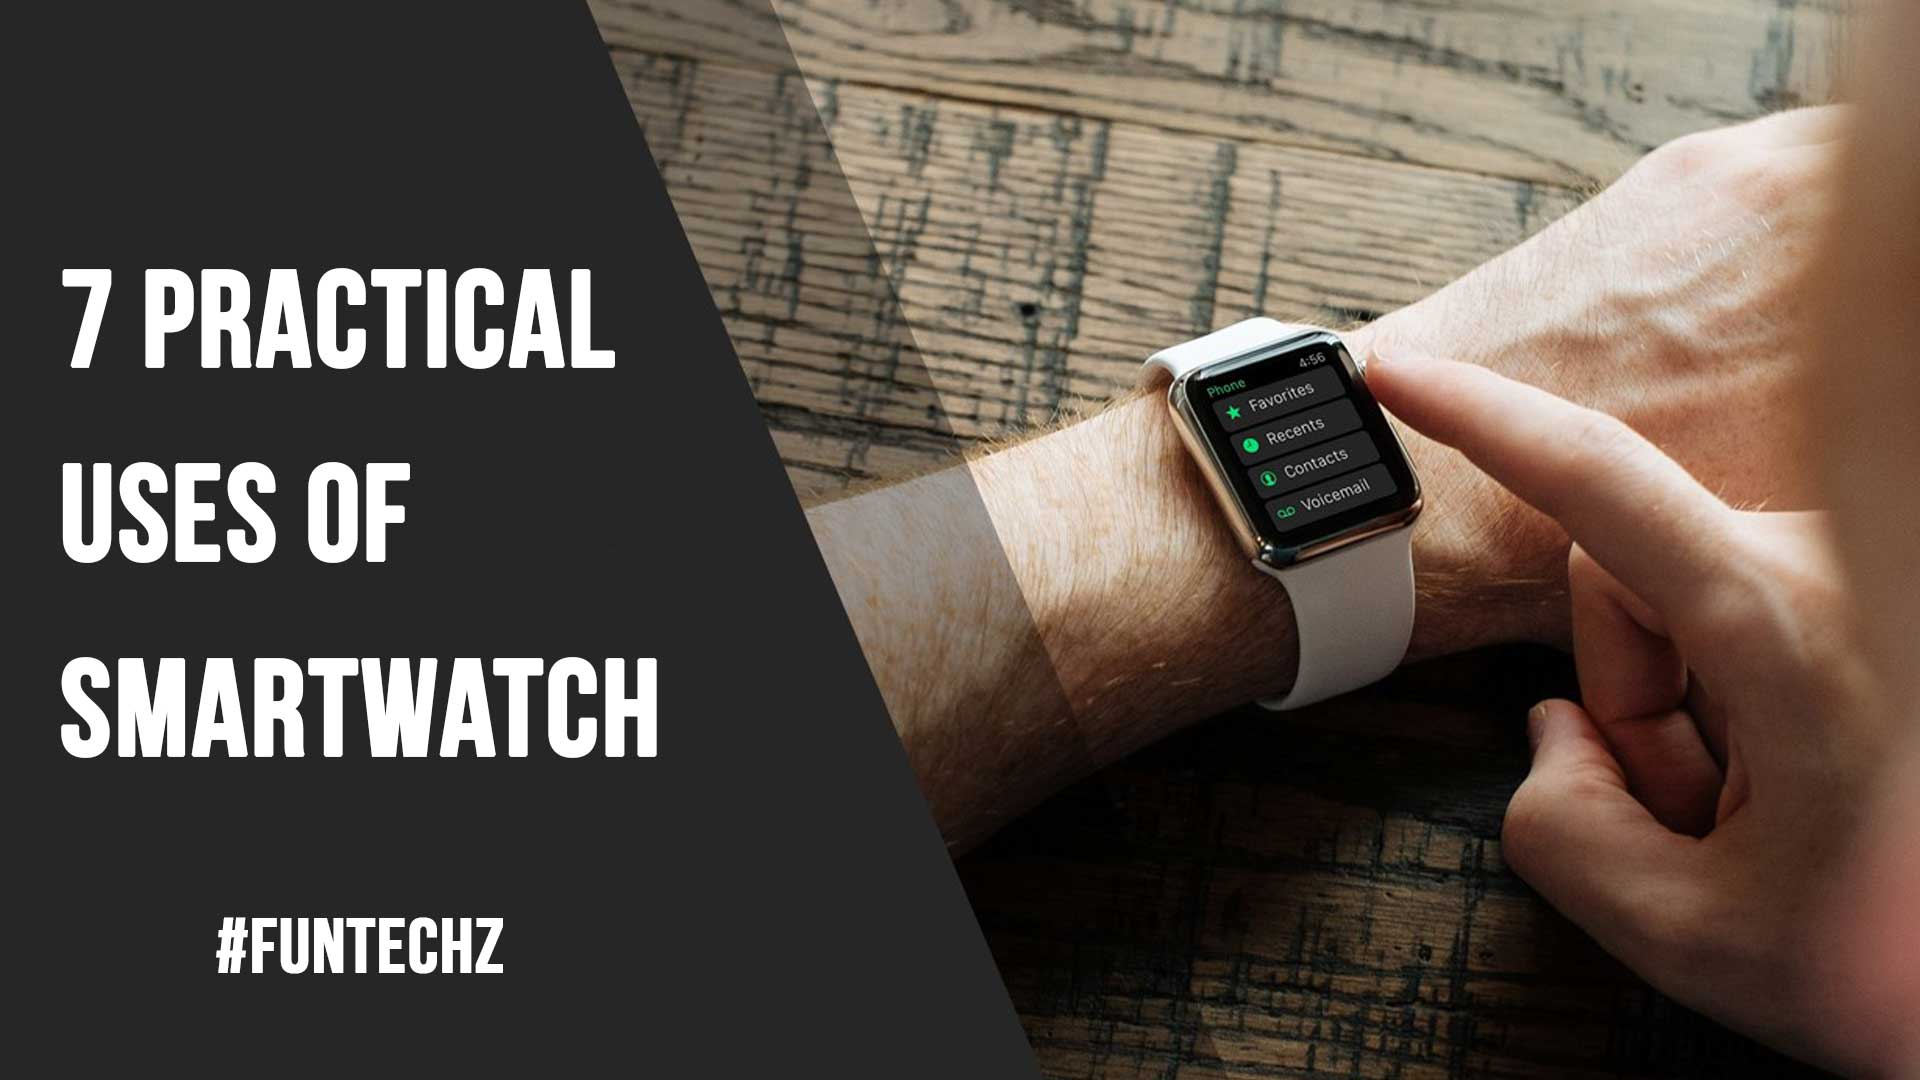 7 Practical Uses of Smartwatch